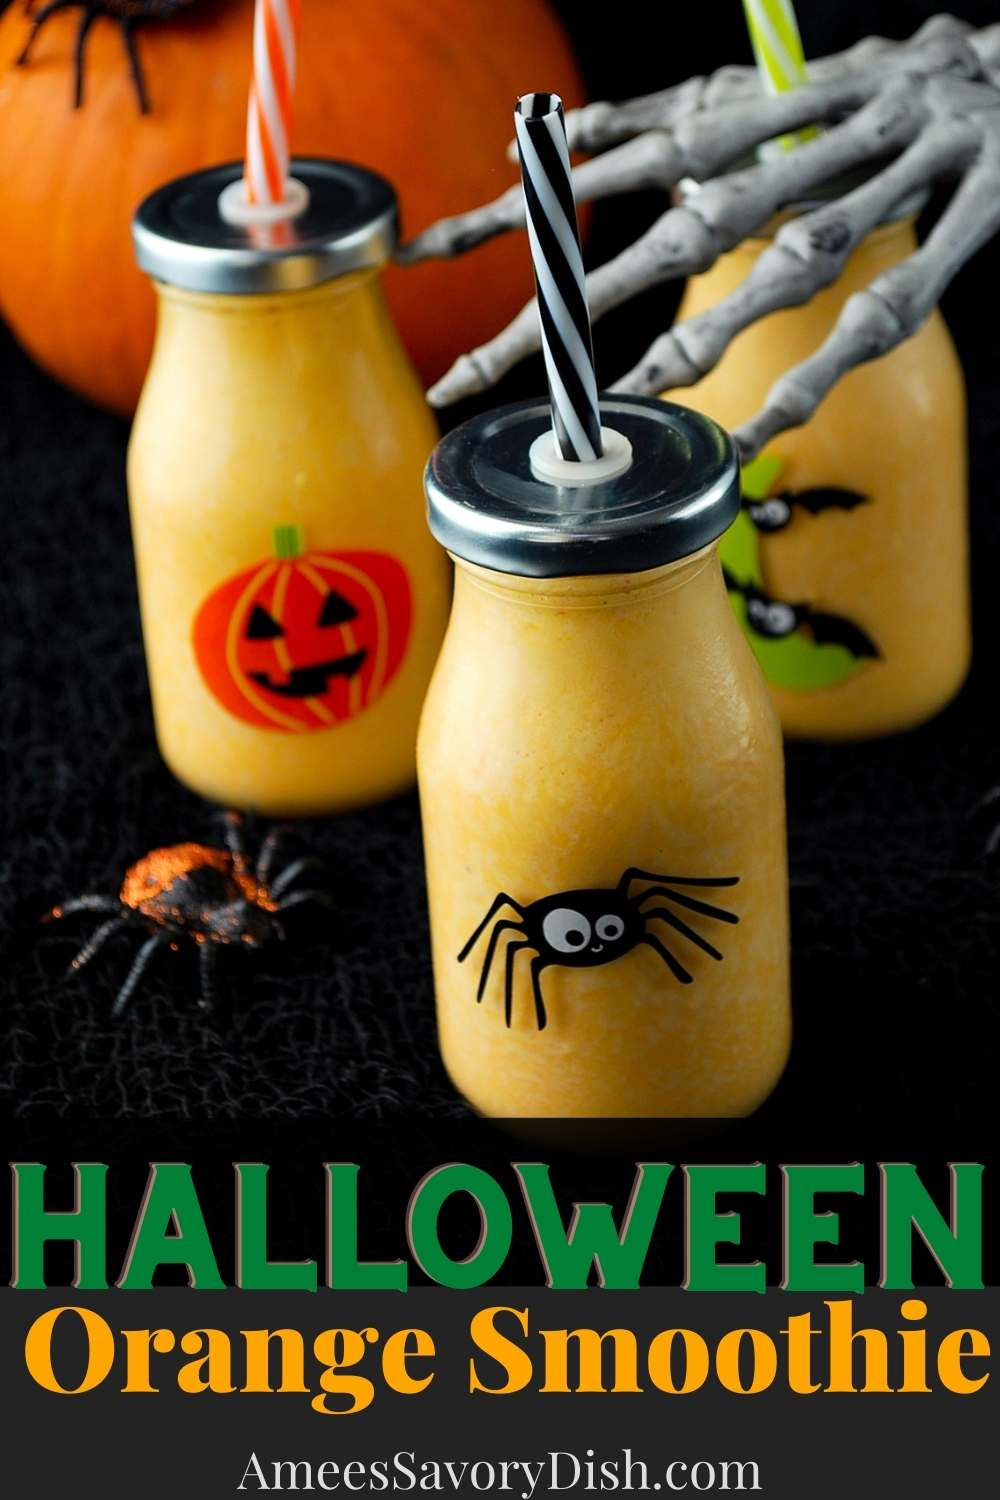 This orange healthy Halloween Smoothie recipe blends together fresh orange juice with Greek yogurt, protein powder, and frozen pineapple to make a healthy and refreshing fall drink. via @Ameessavorydish